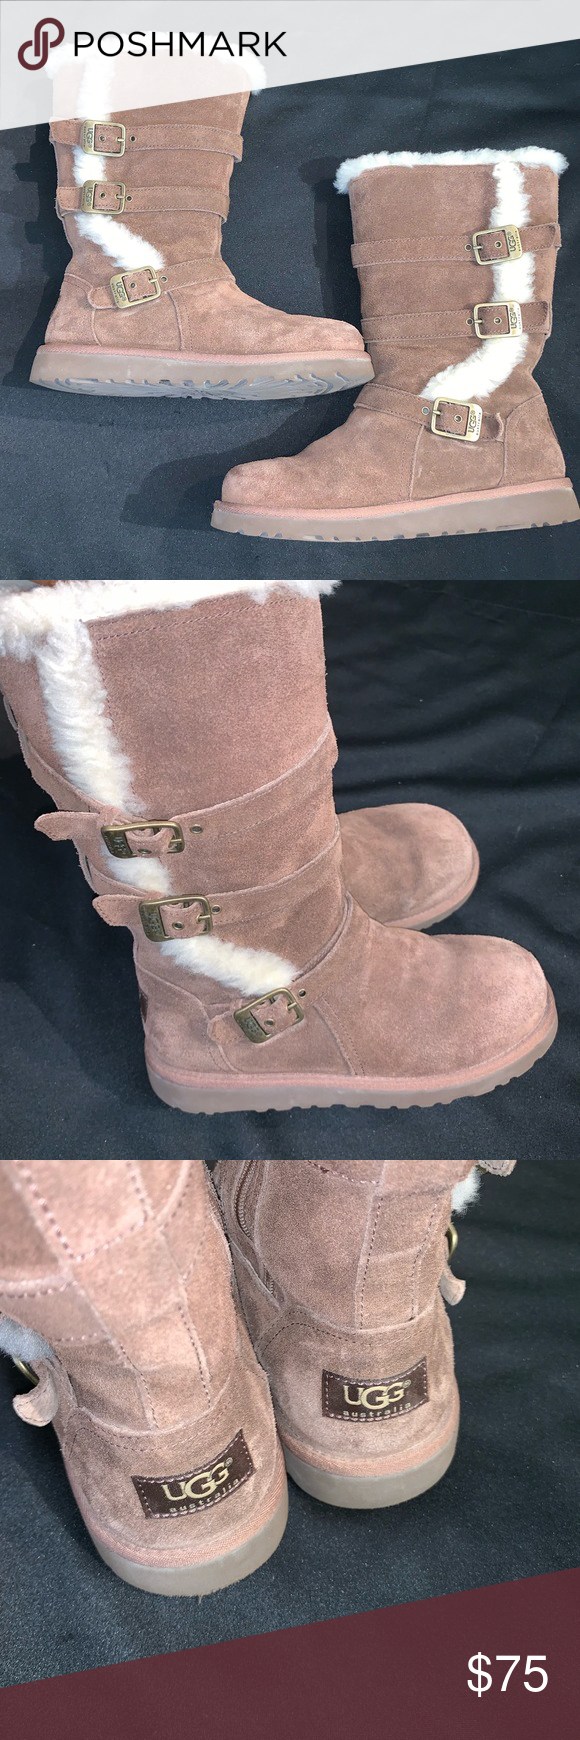 Ugg   Boots   Ugg boots, Shoes boots